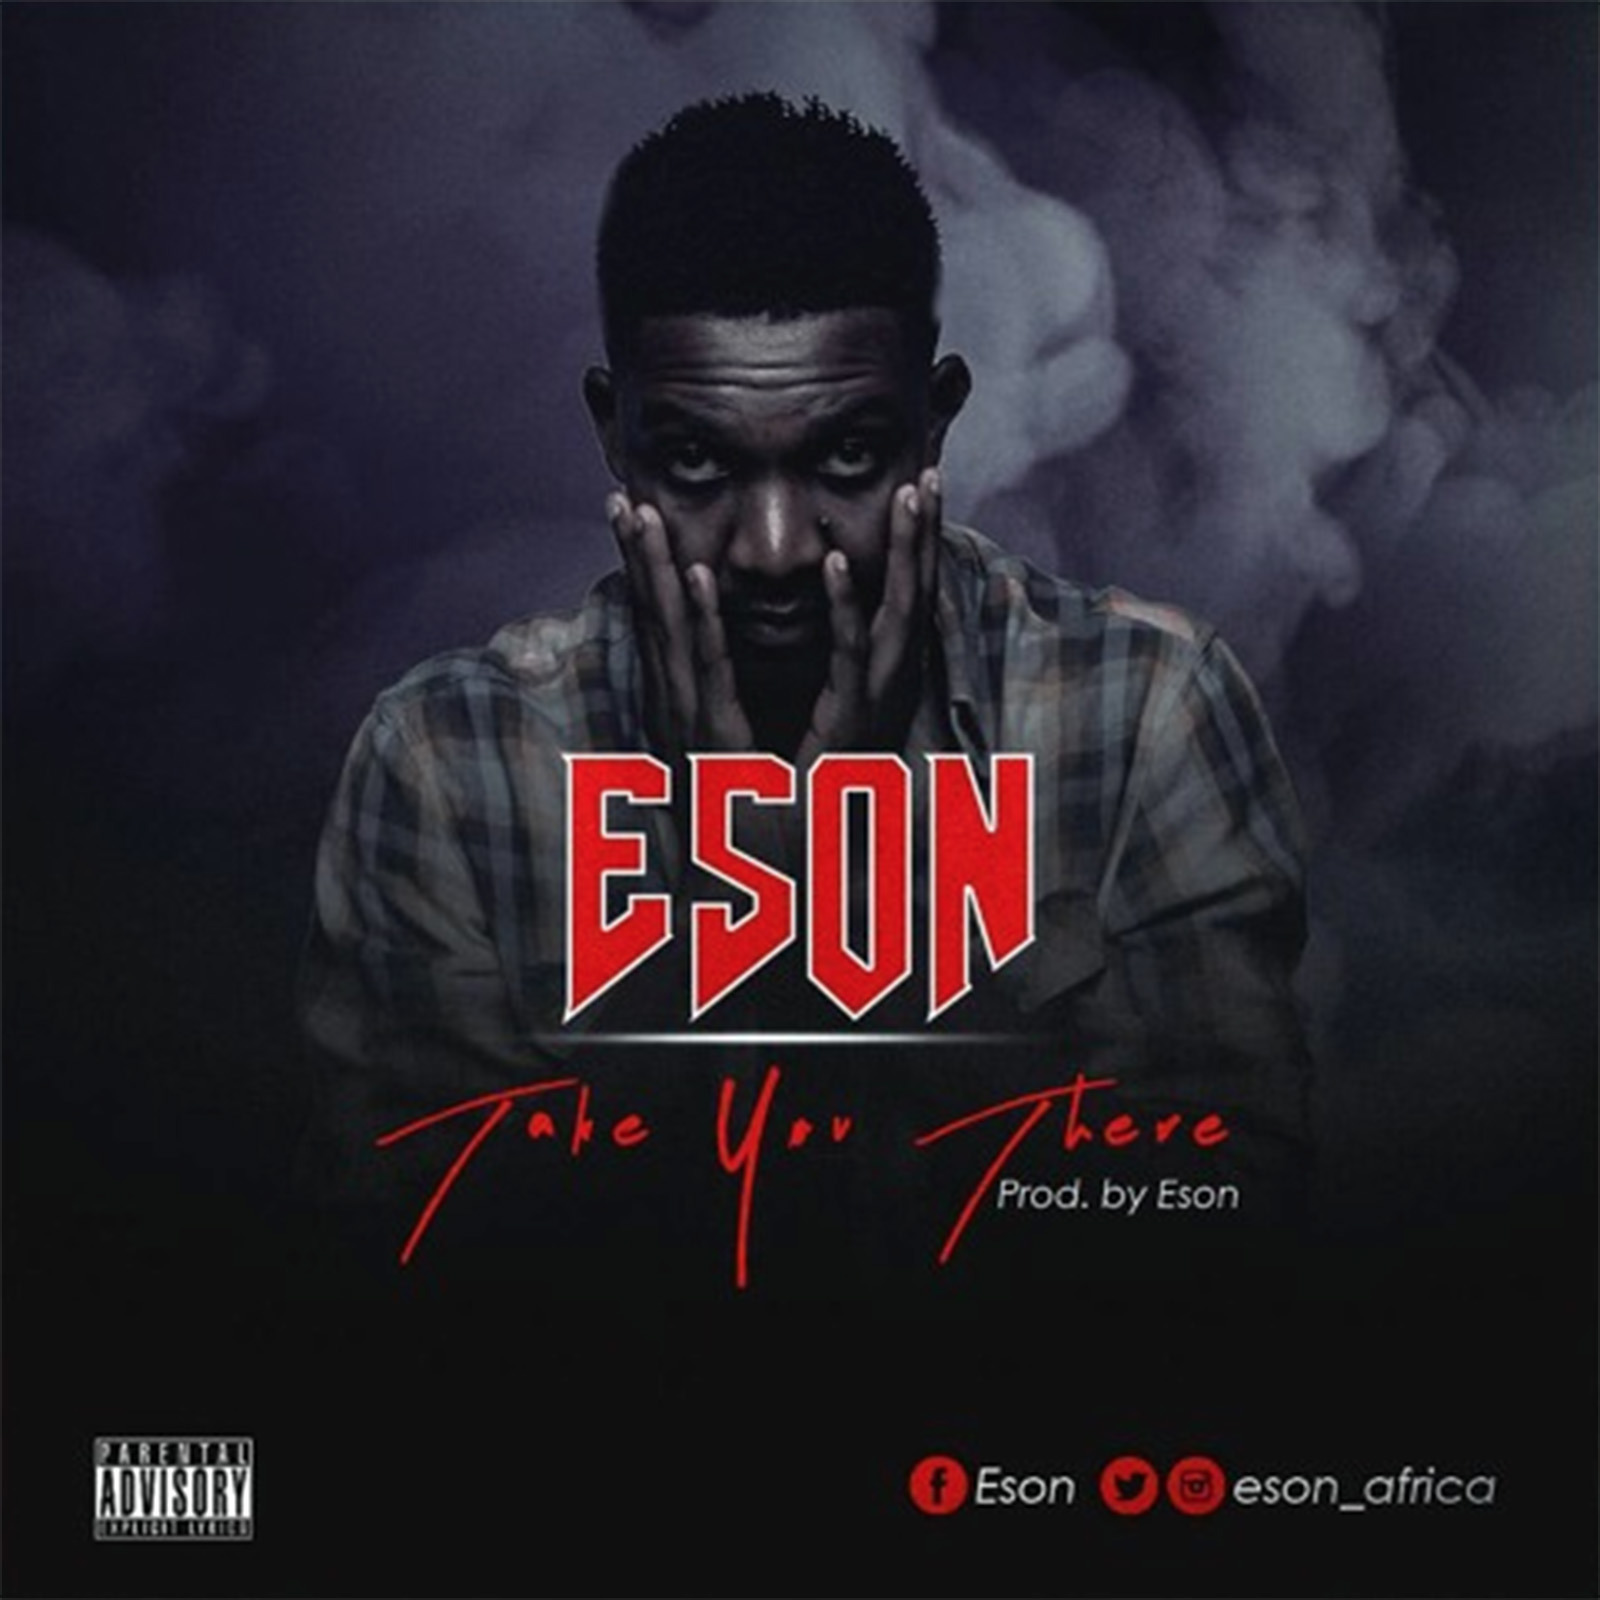 Take You There by Eson